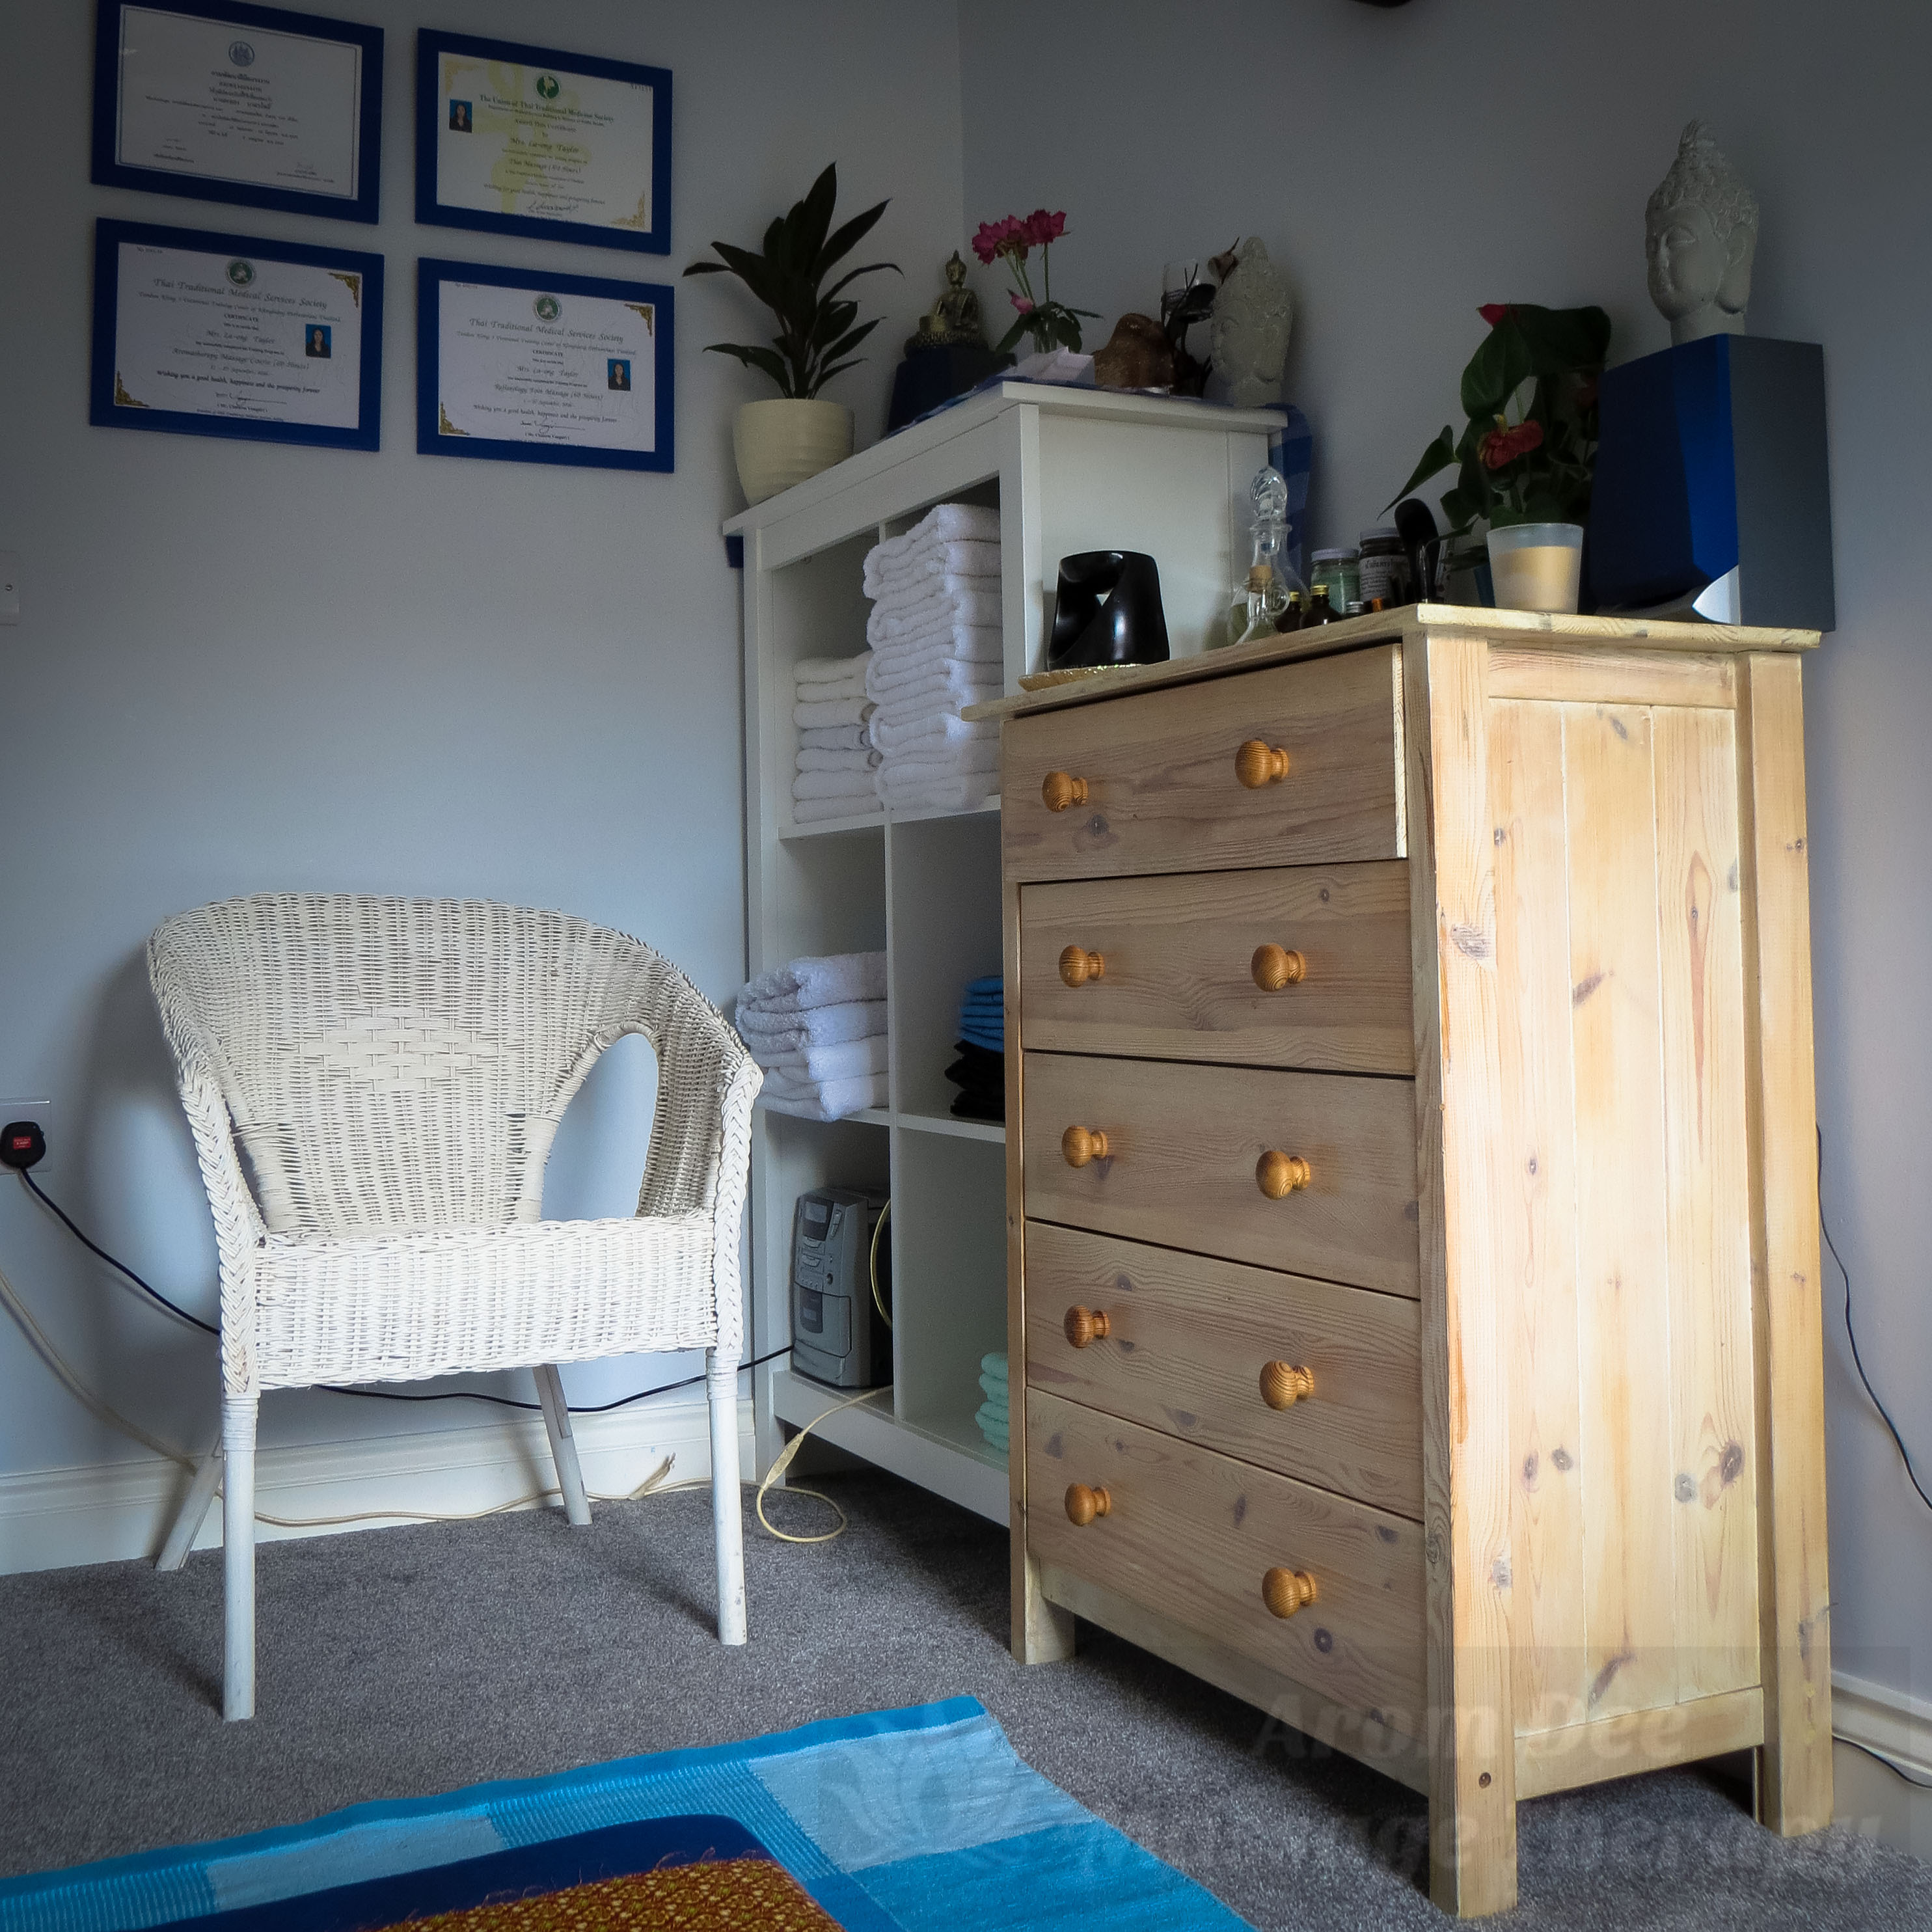 Four massage certificates on wall, chair, chest of drawers, folded towels inopen cabinet